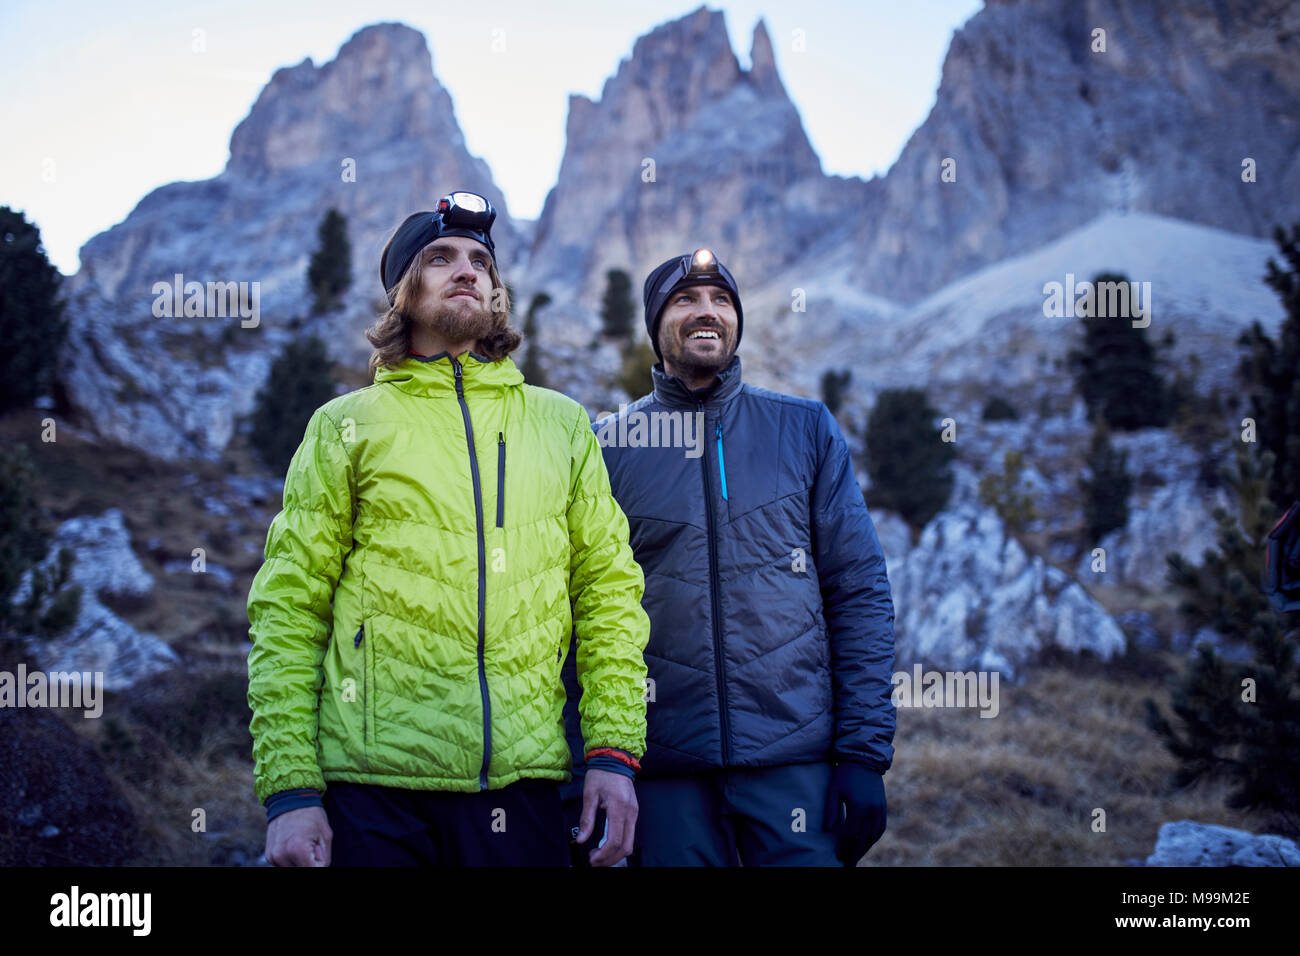 Two confident men wearing headlamps in the mountains - Stock Image